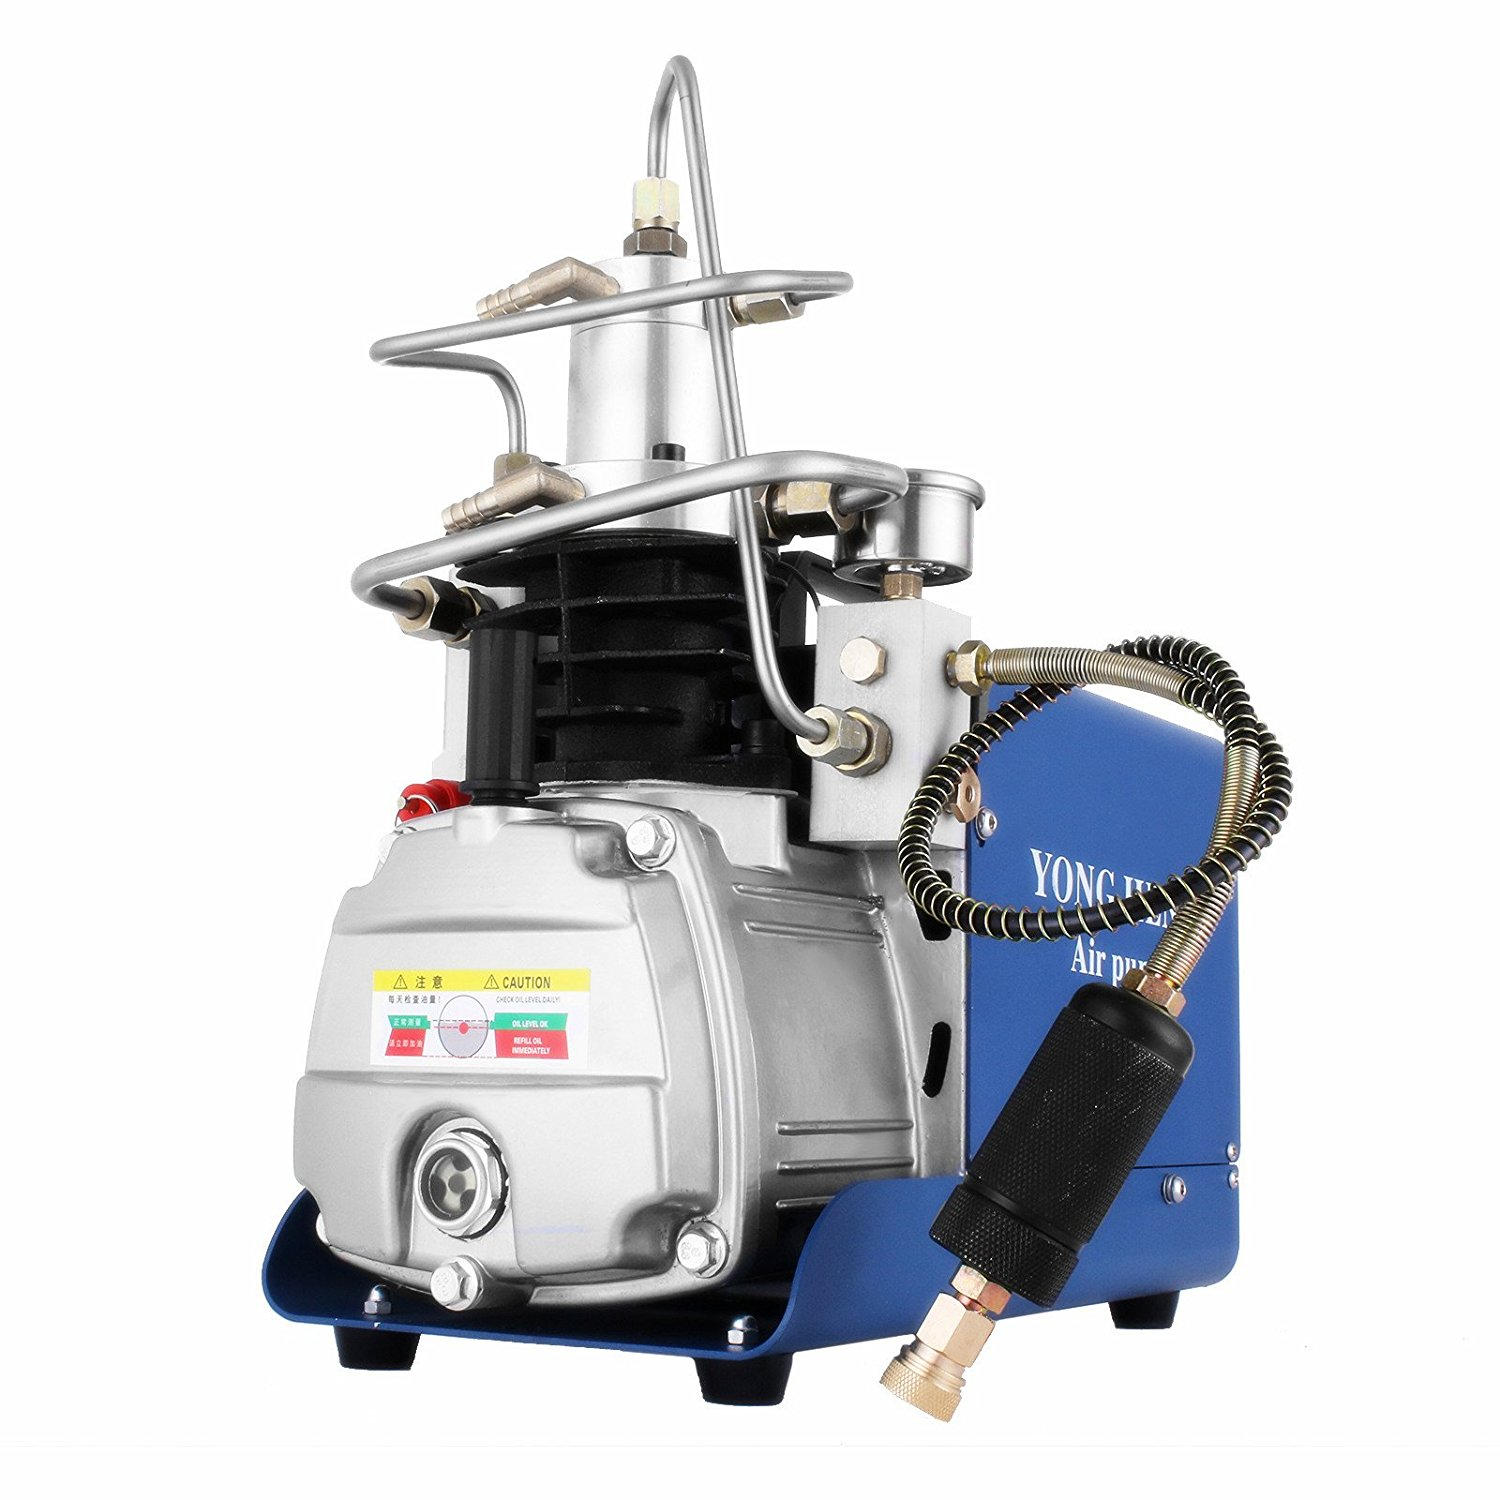 Popsport High-Pressure Air Pump 30MPa Electric Air Compressor Pump 110V PCP Compressor Pump 4500PSI Airgun Compressor for Fire Fighting and Diving